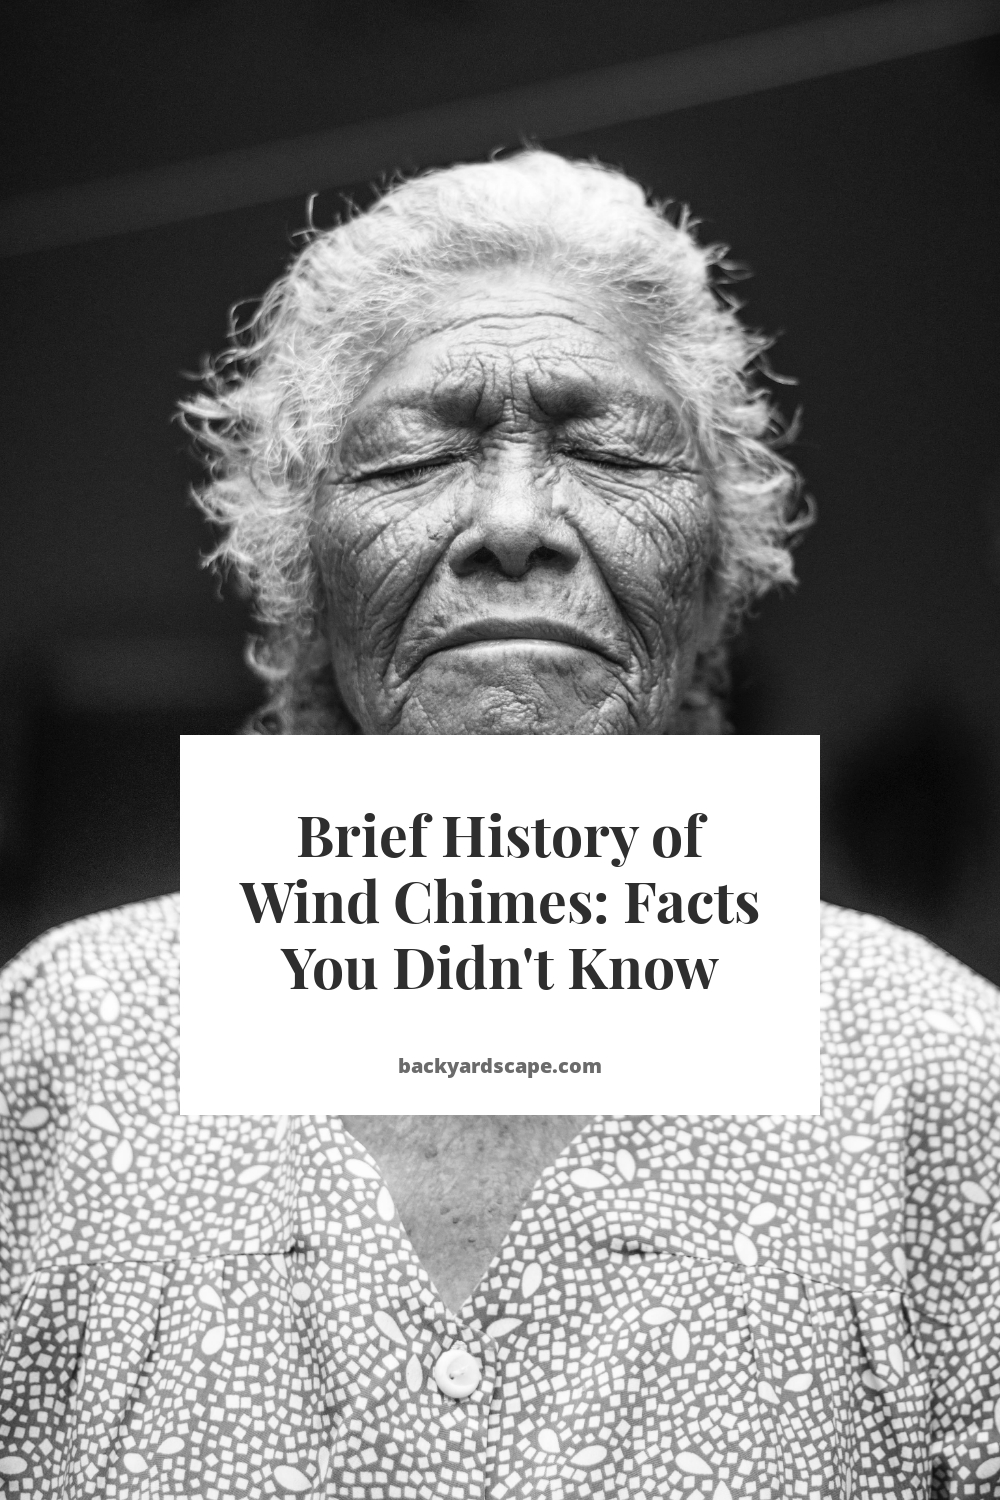 Brief History of Wind Chimes: Facts You Didn't Know